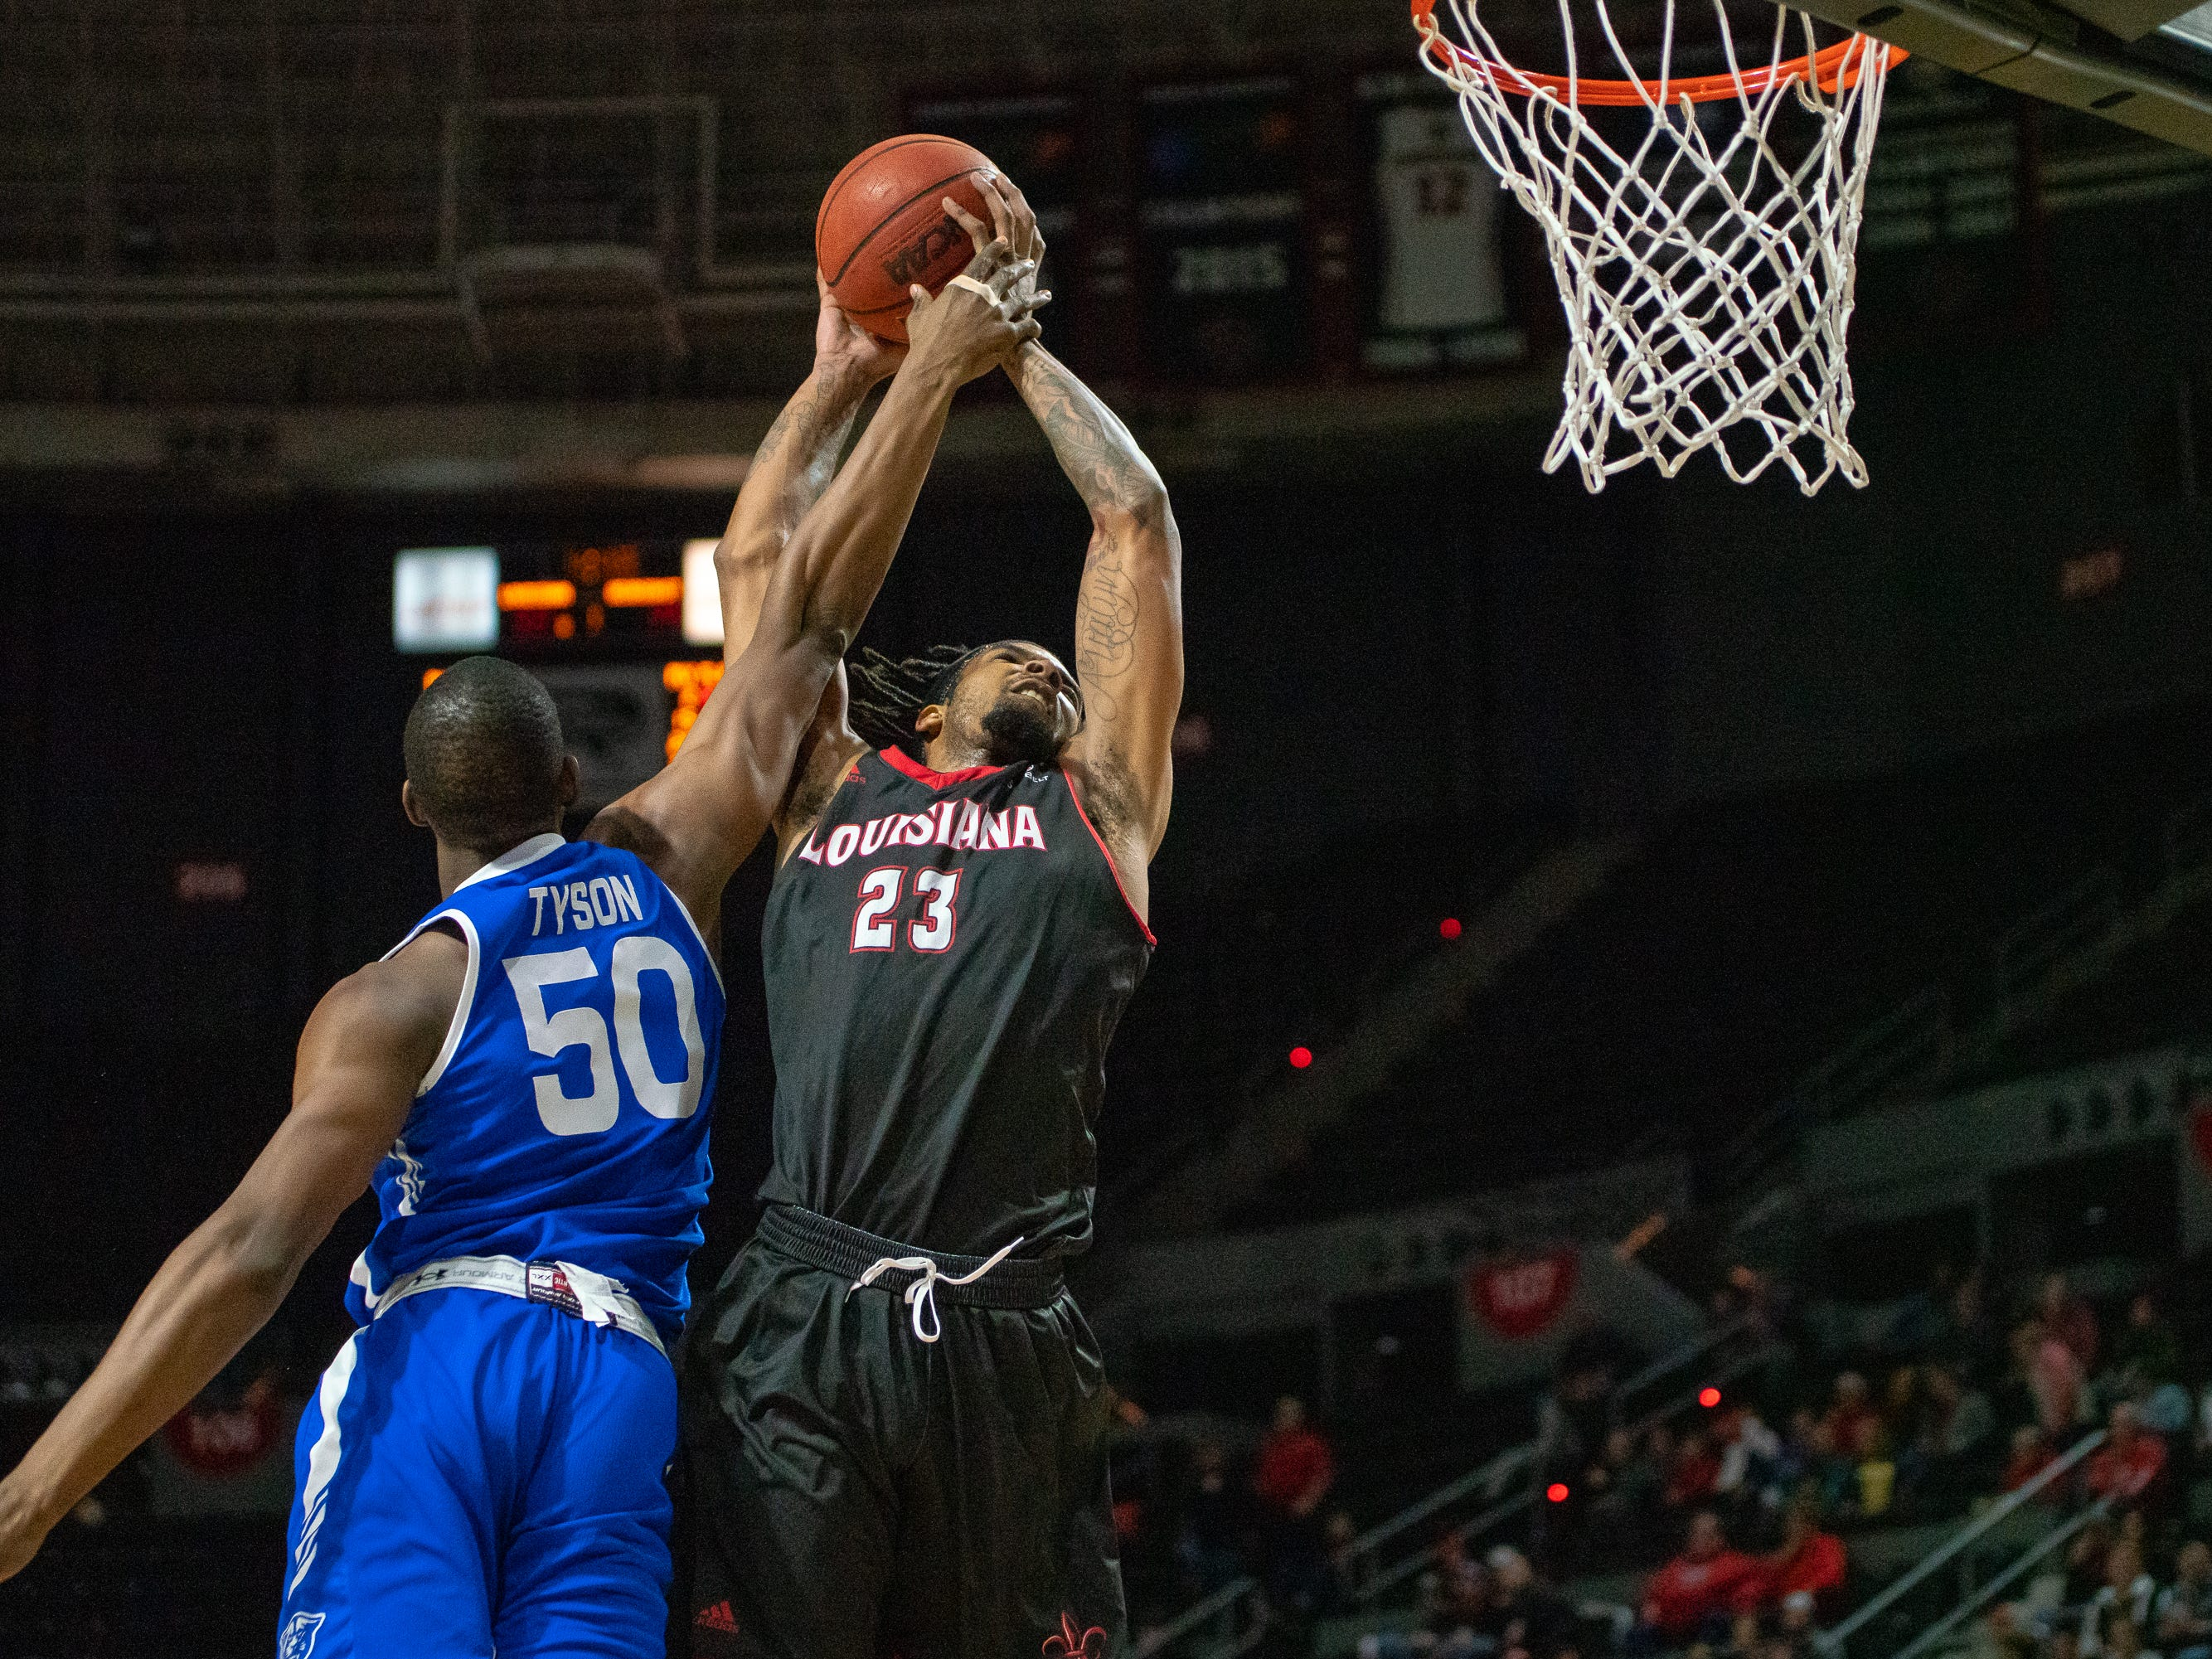 UL's Jakeenan Gant gets foulded while going up to the goal as the Ragin' Cajuns take on the Georgia State Panthers at the Cajundome on Feb. 8, 2019.